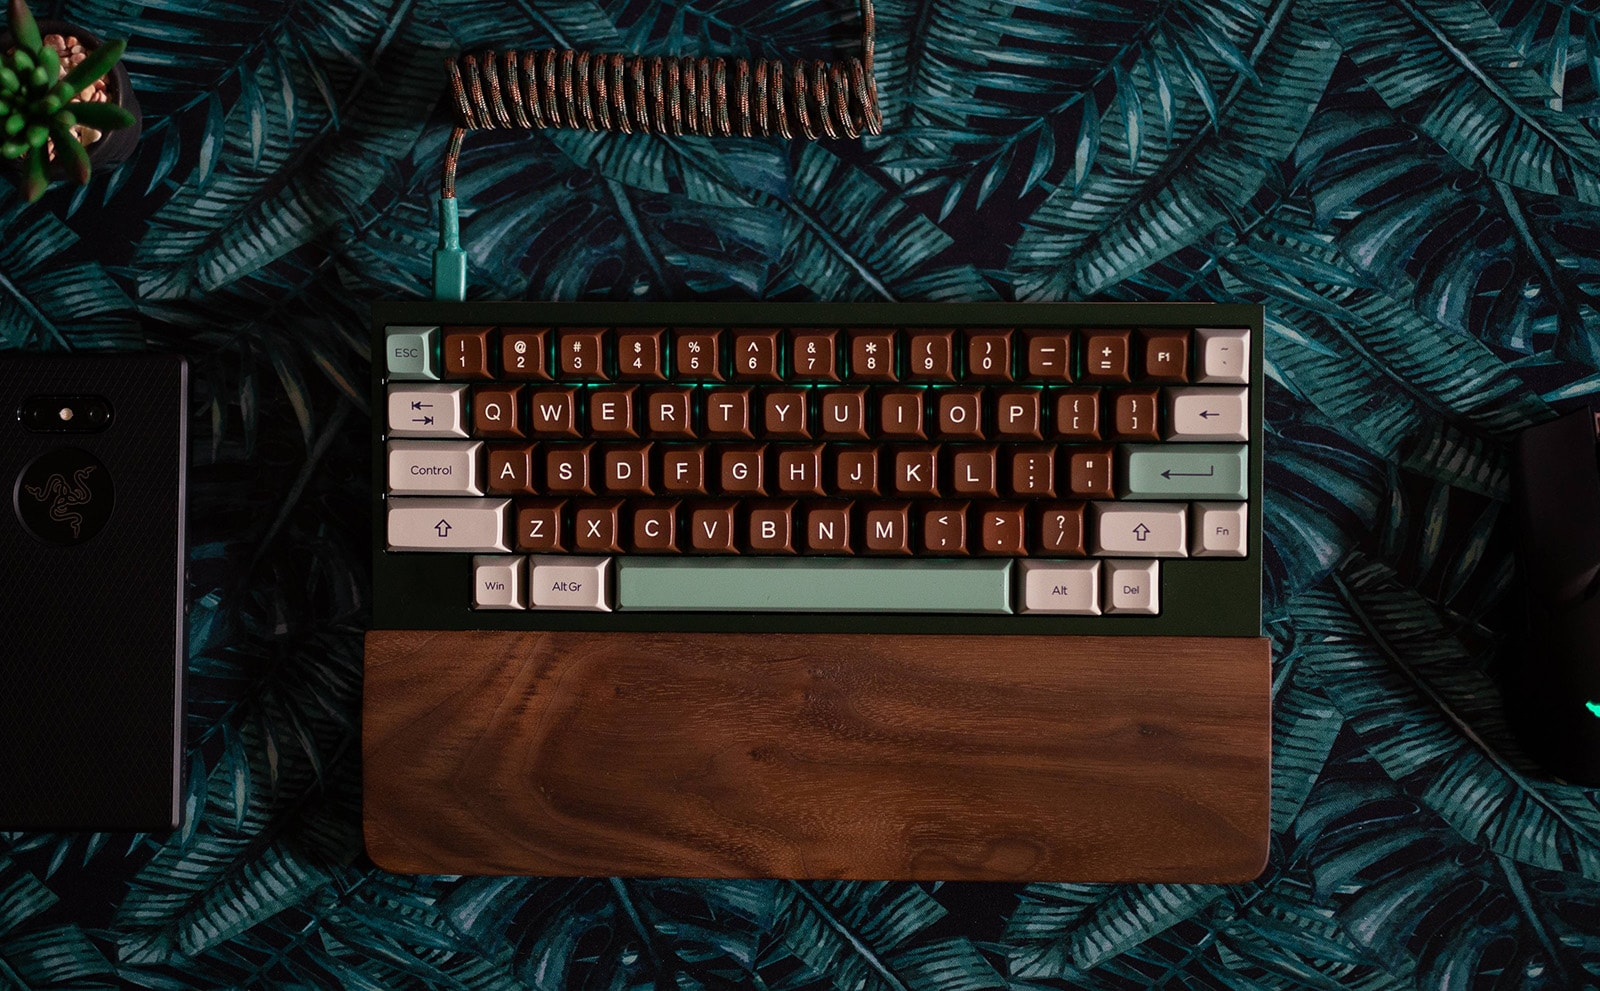 60% keyboard size example